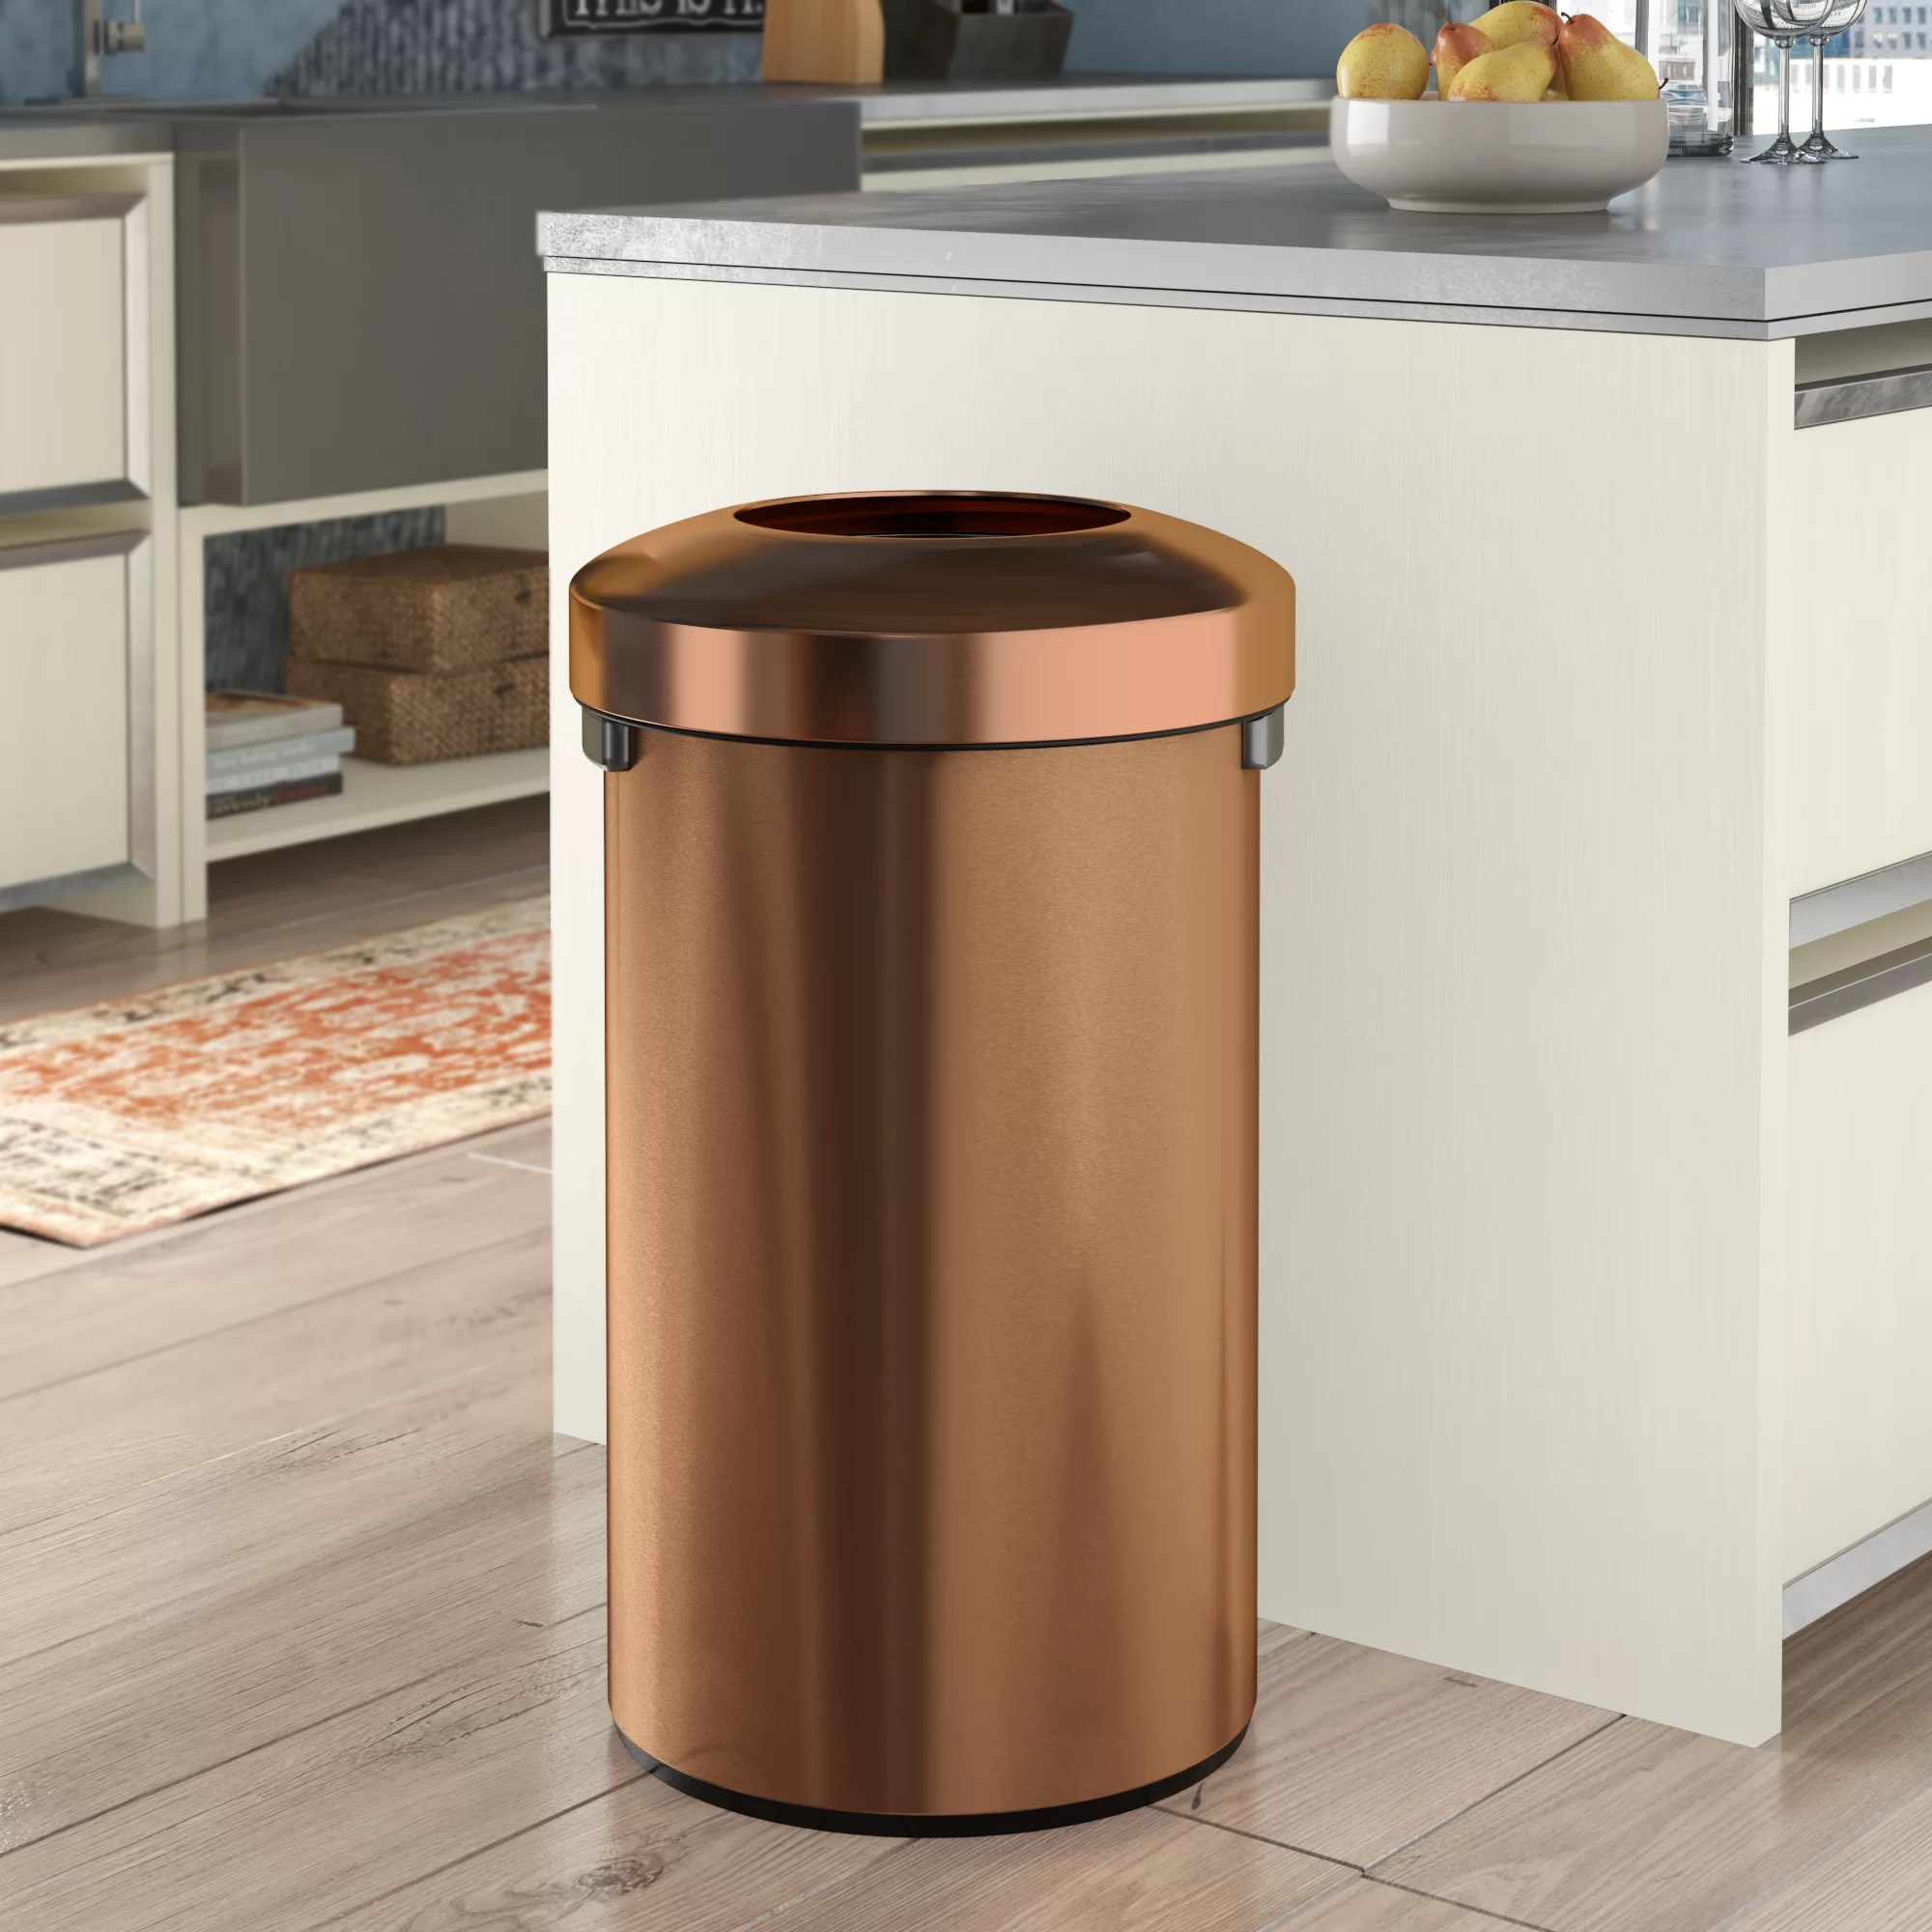 Copper Trash Can With Lid Decorative Receptacle Stainless Steel 24 Gallon Trash Can